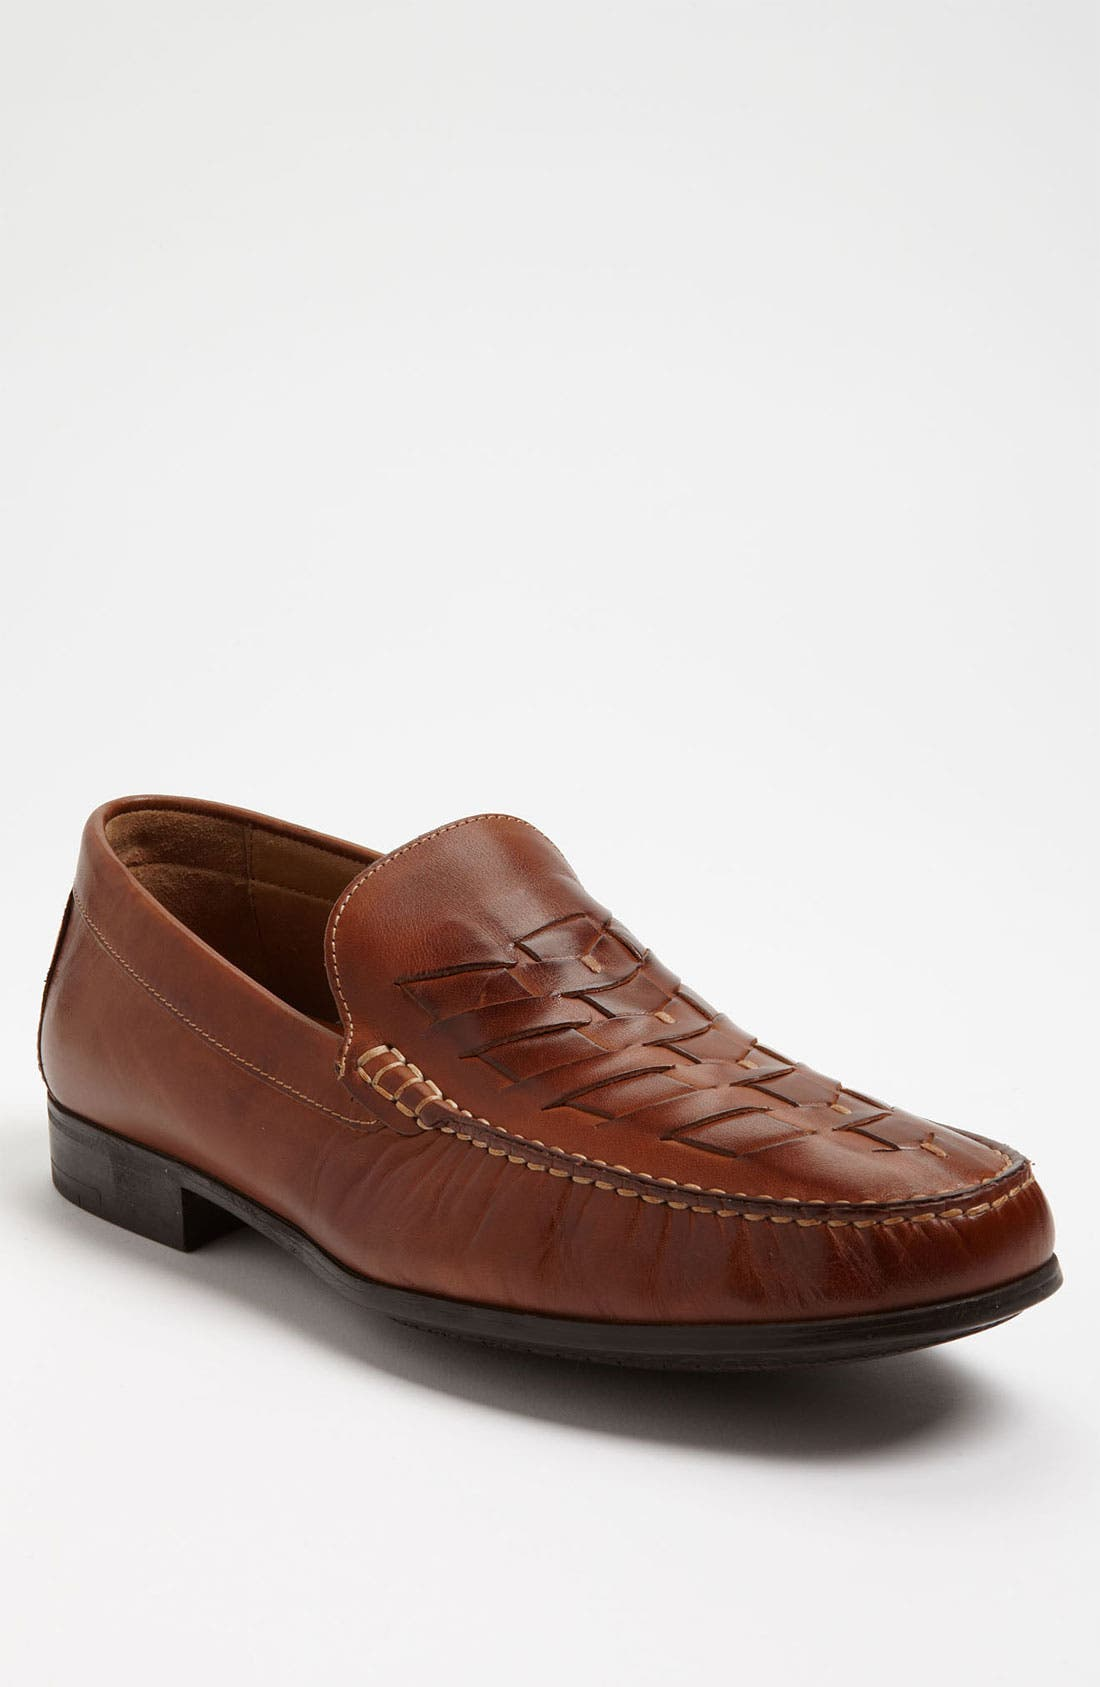 Main Image - Johnston & Murphy 'Cresswell' Loafer (Online Only)